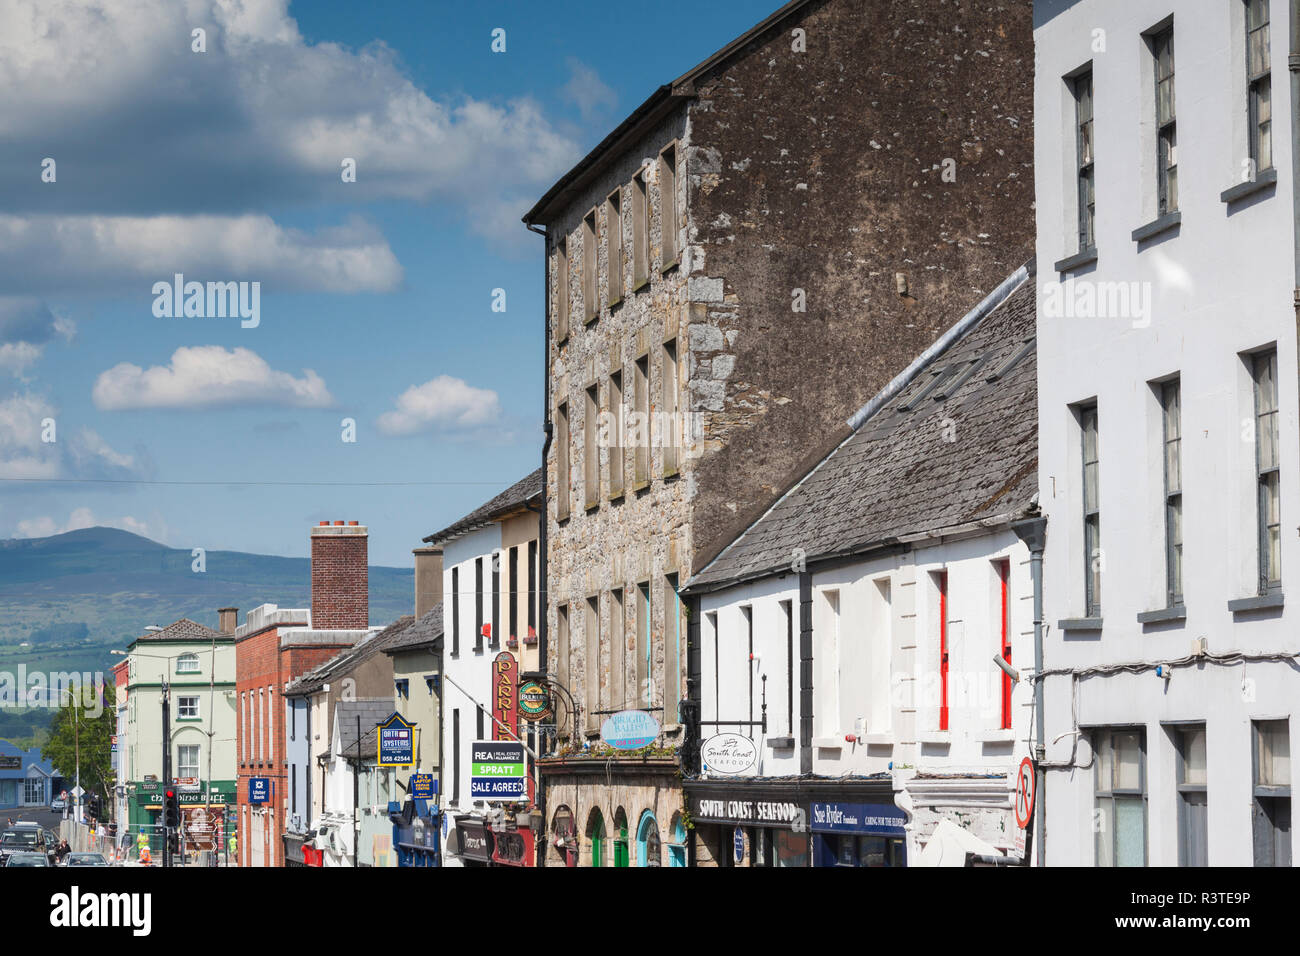 9d0f8a3b7538f Ireland, County Waterford, Dungarvan, town buildings Stock Photo ...